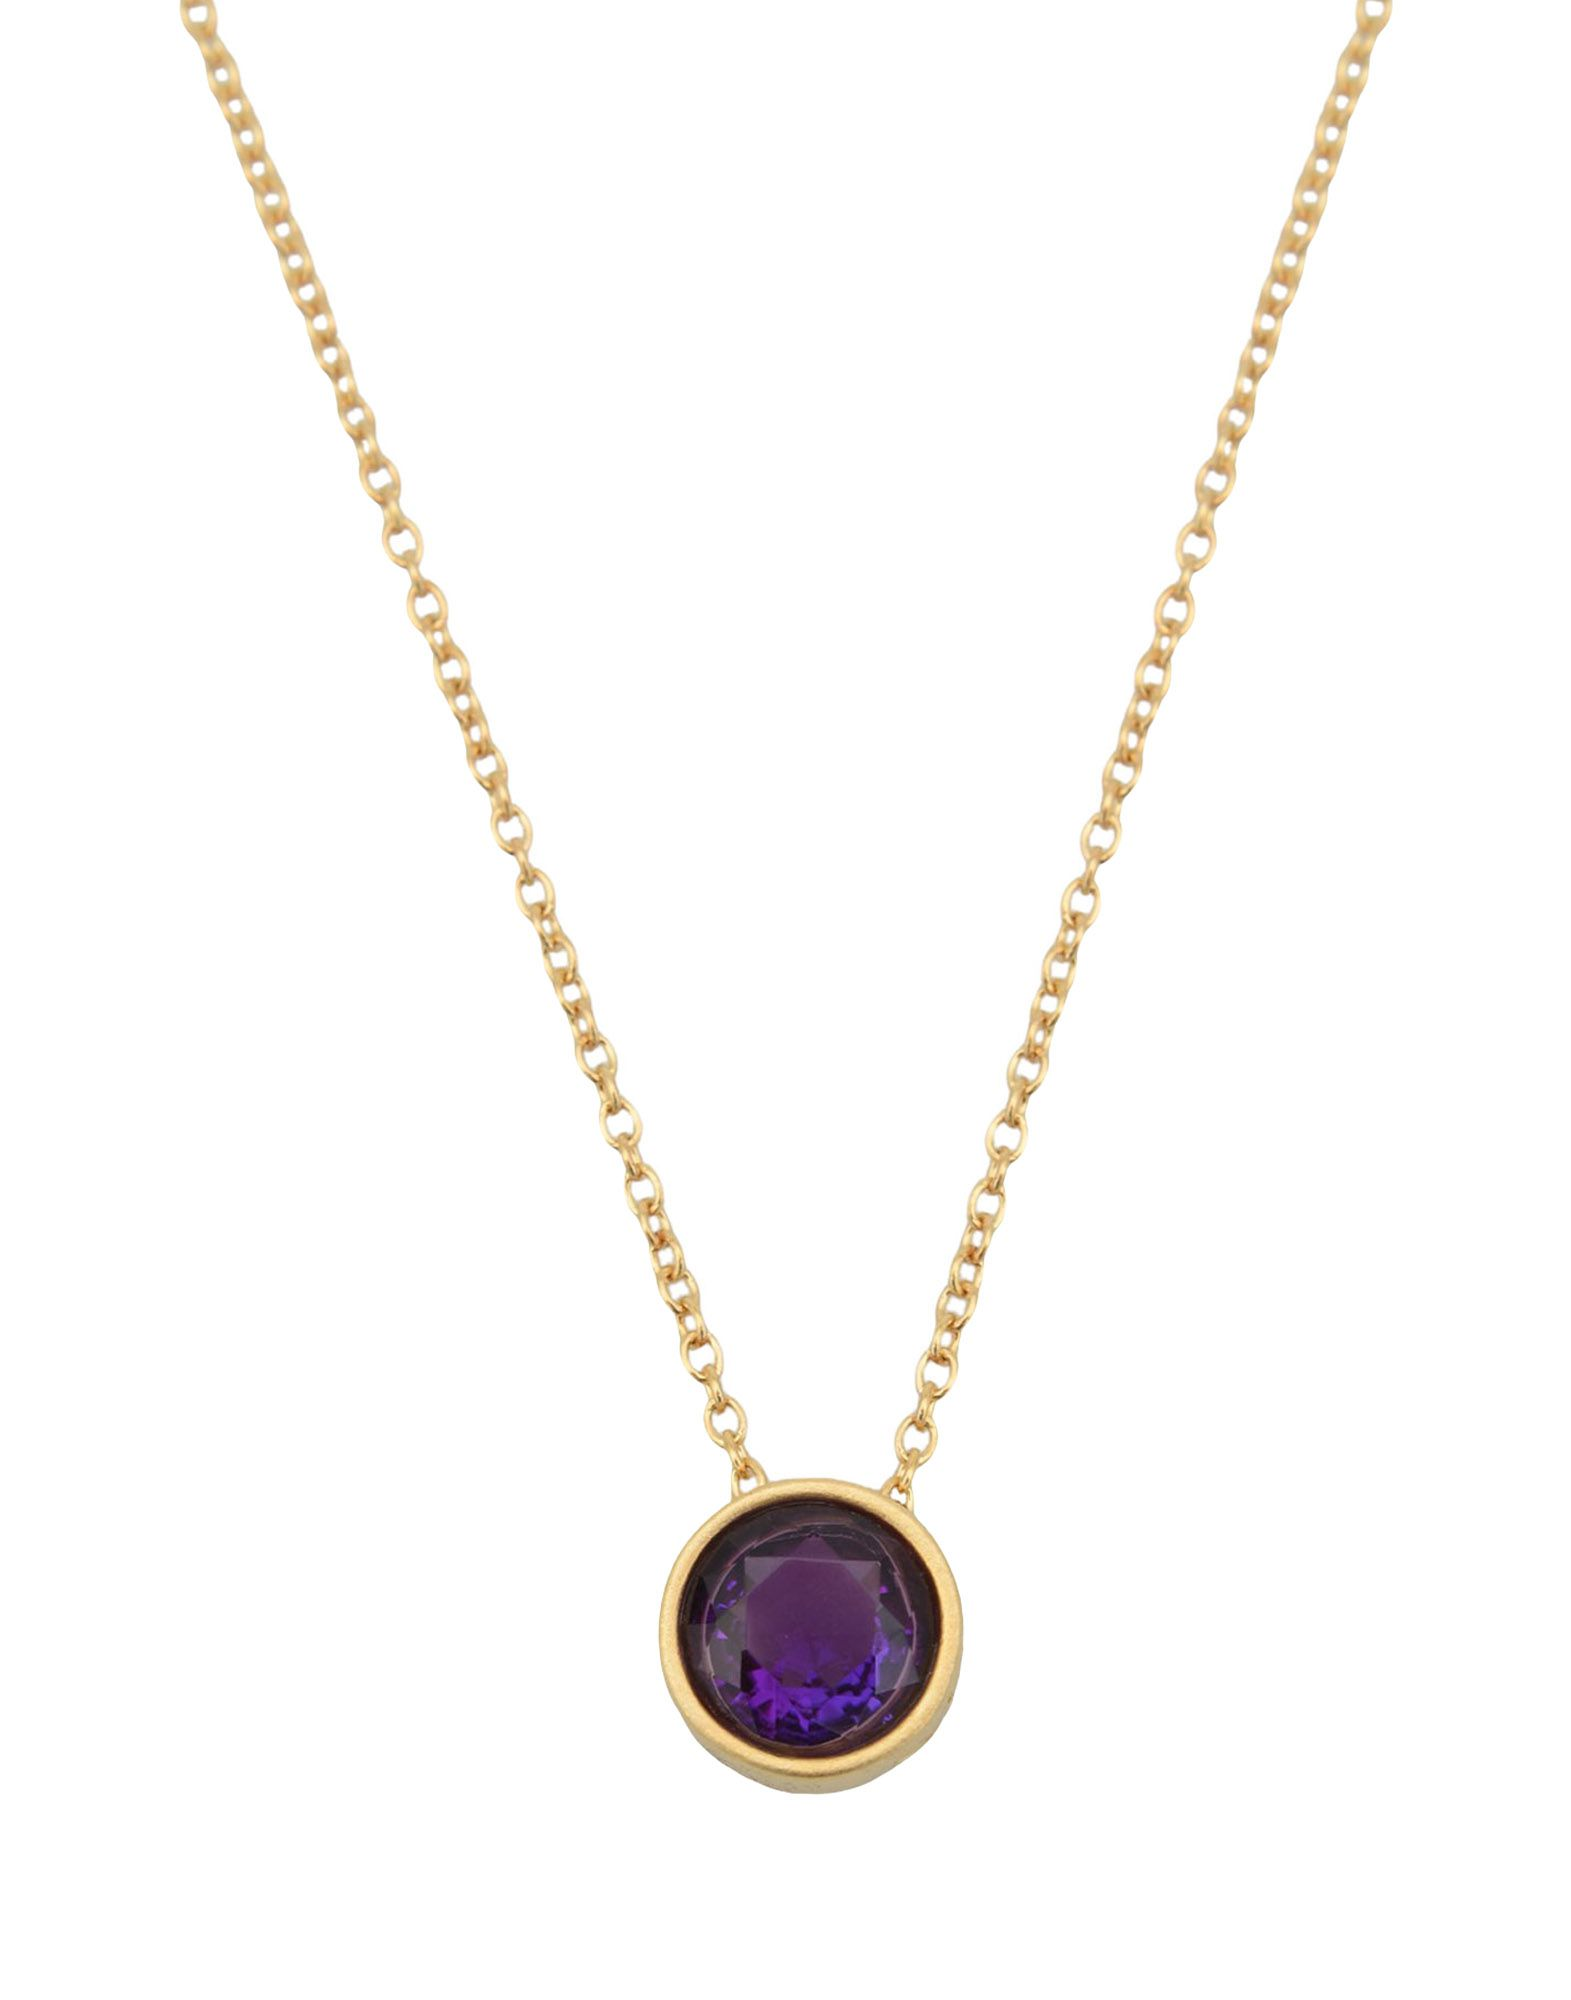 BLISS Necklace in Gold